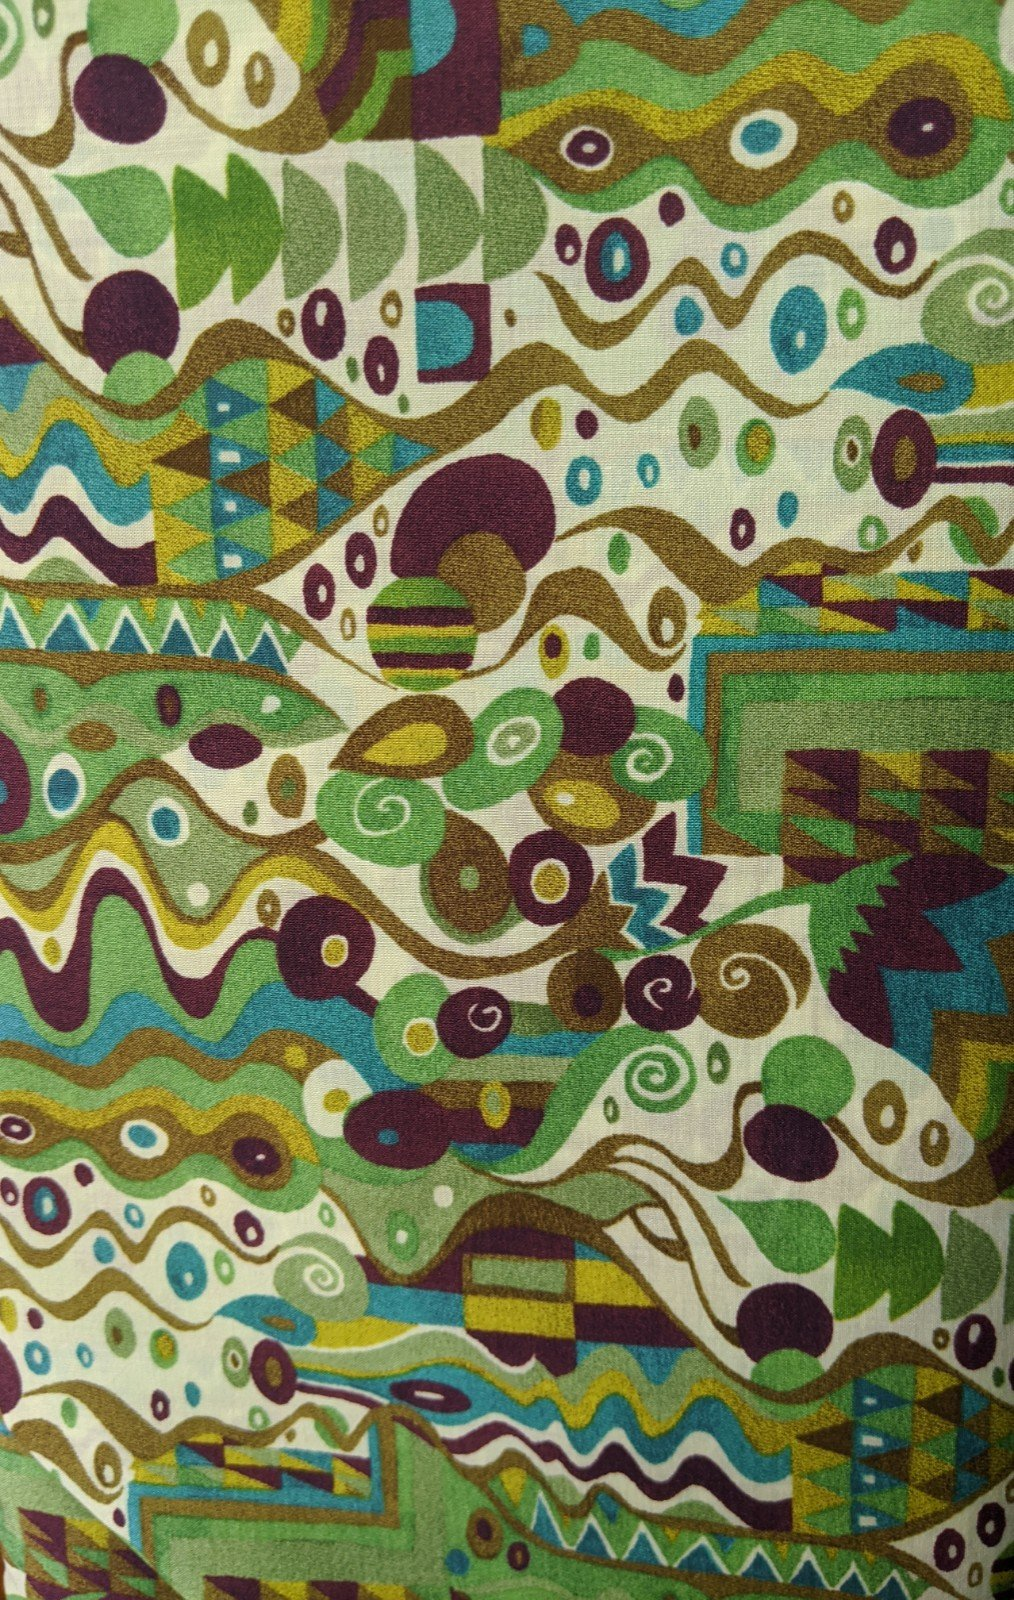 Liberty of London Cotton Lawn - Abstract Green